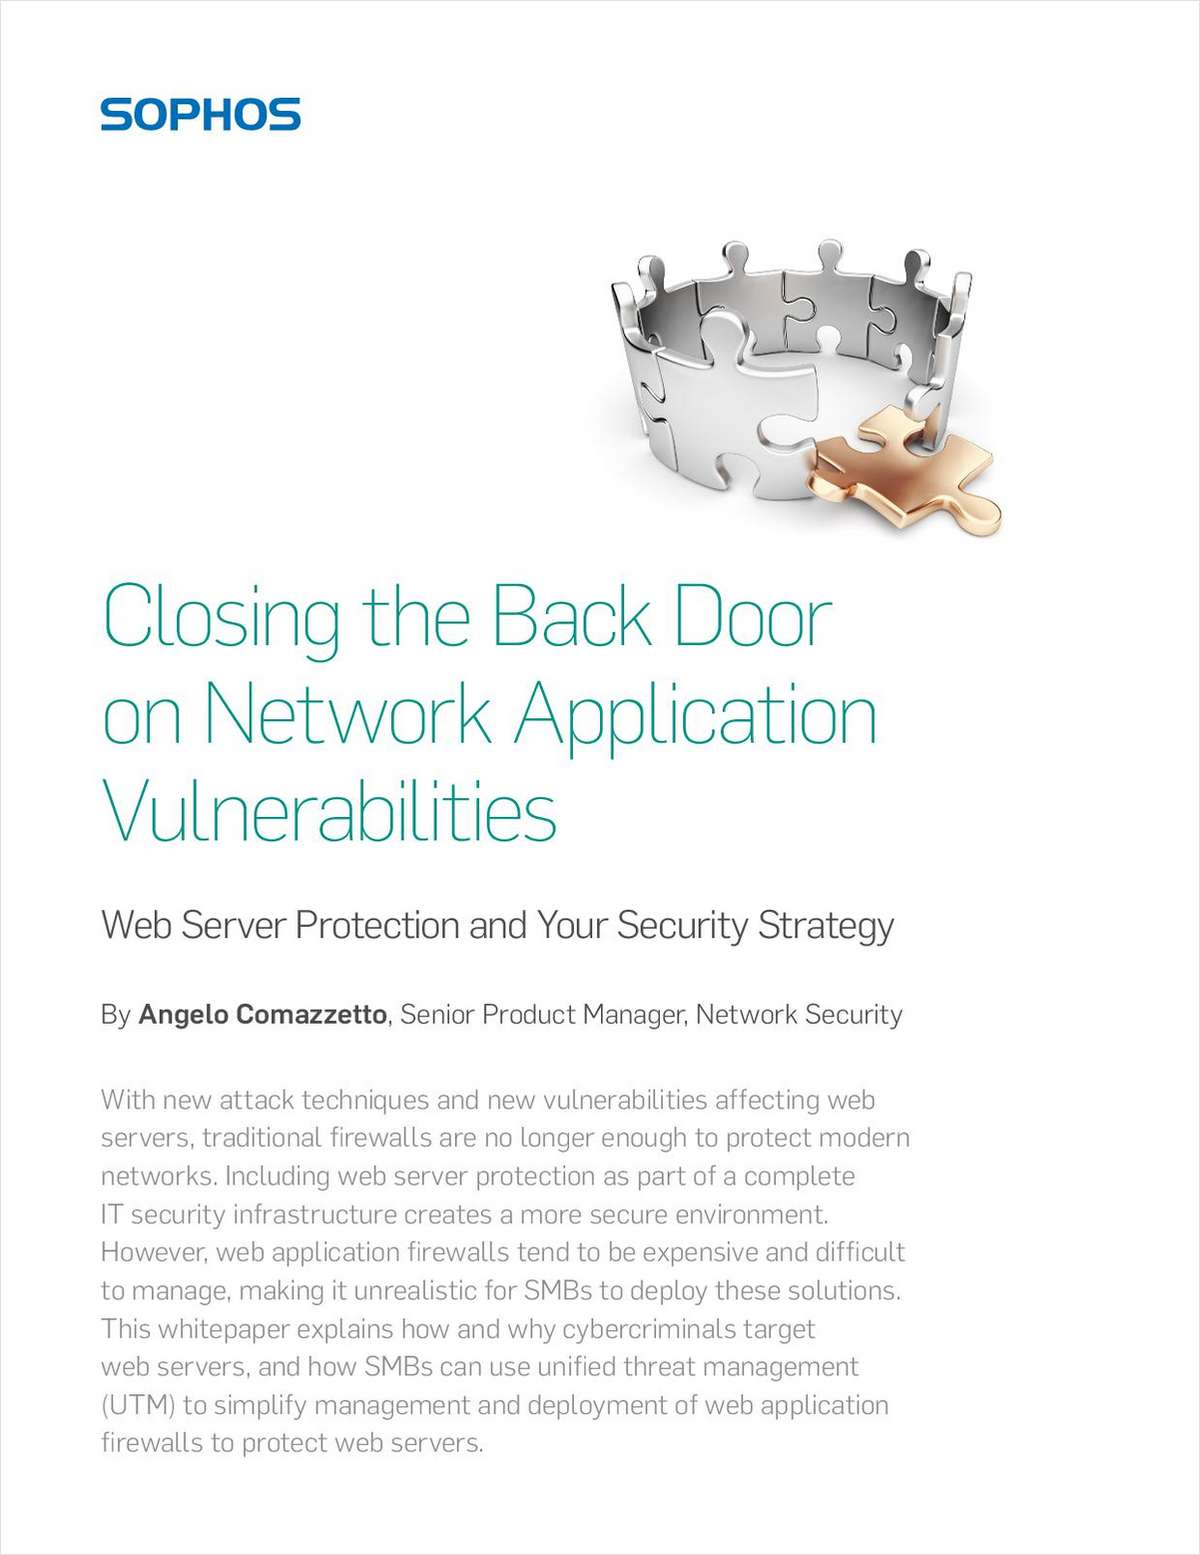 Closing the Back Door on Network Application Vulnerabilities